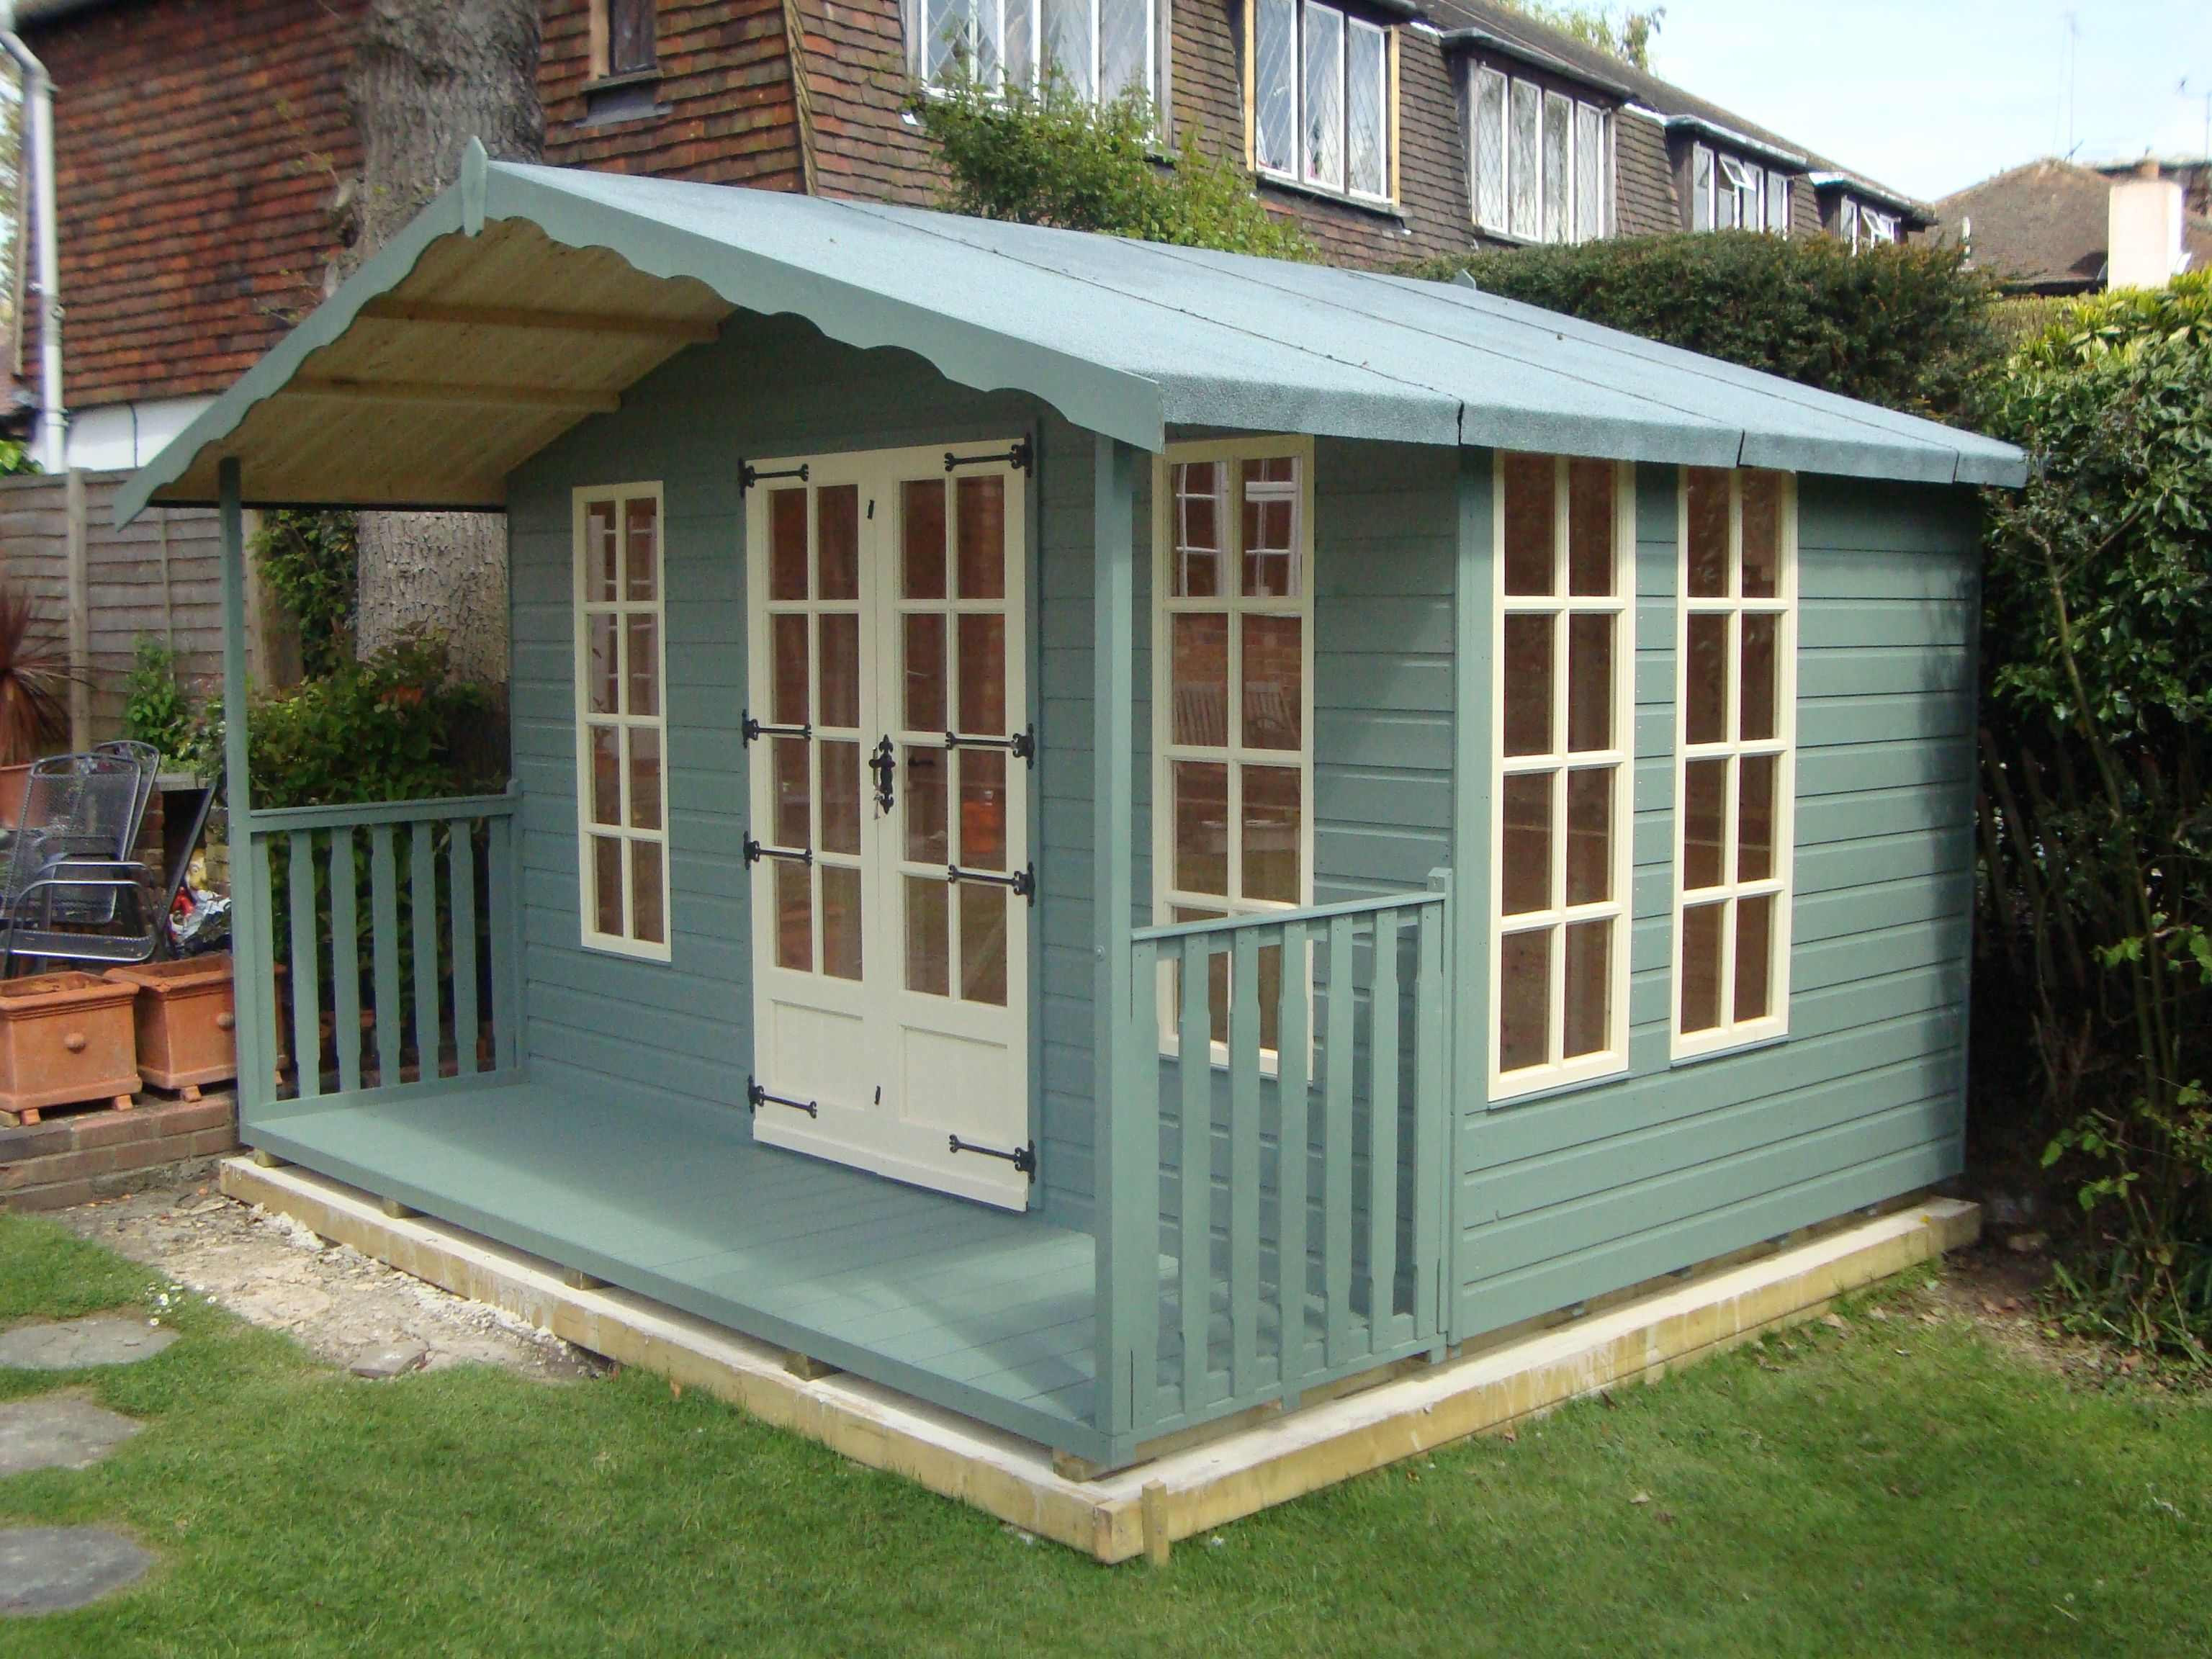 Garden Sheds And Summerhouses click to close image, click and drag to move. use arrow keys for